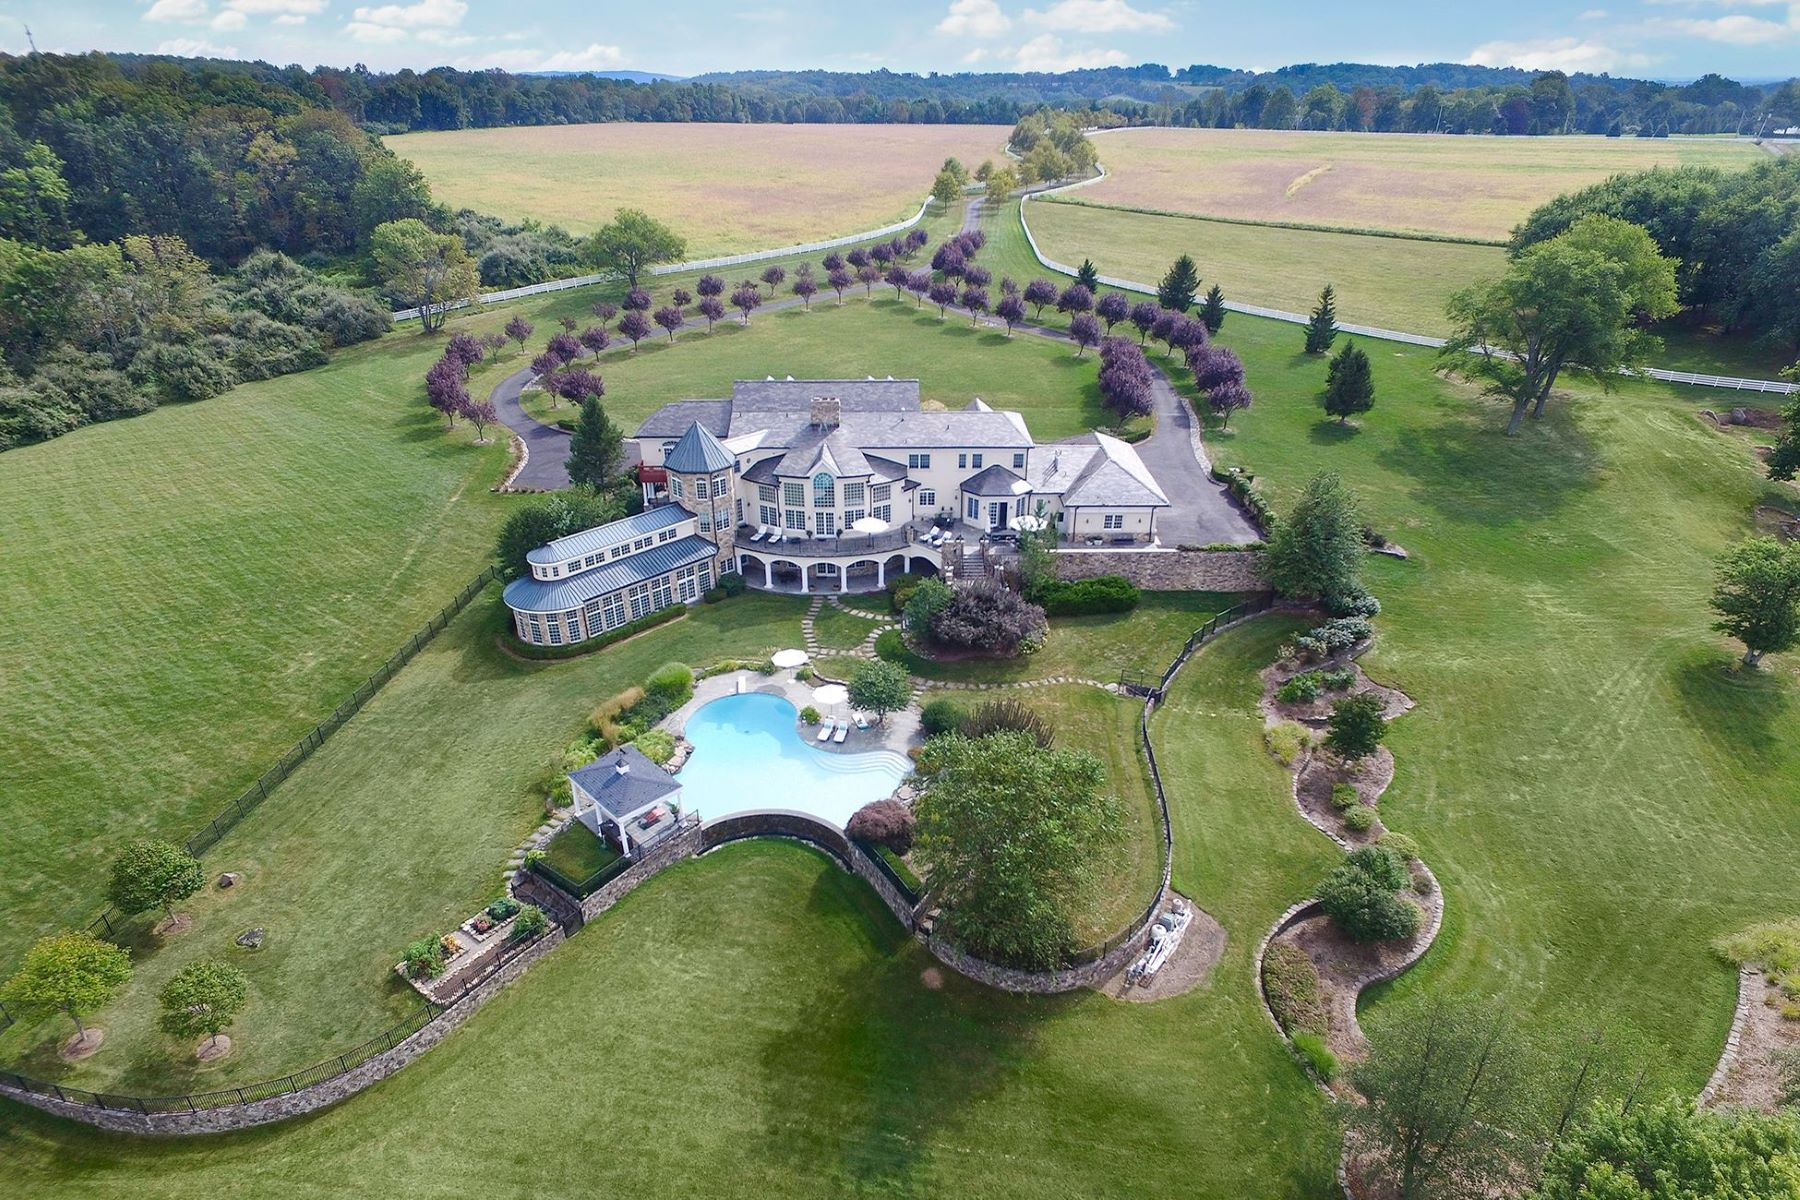 Offers Ideal Setting For Country Estate 131-133 Harbourton Woodsville Road, Lambertville, New Jersey 08530 Hoa Kỳ